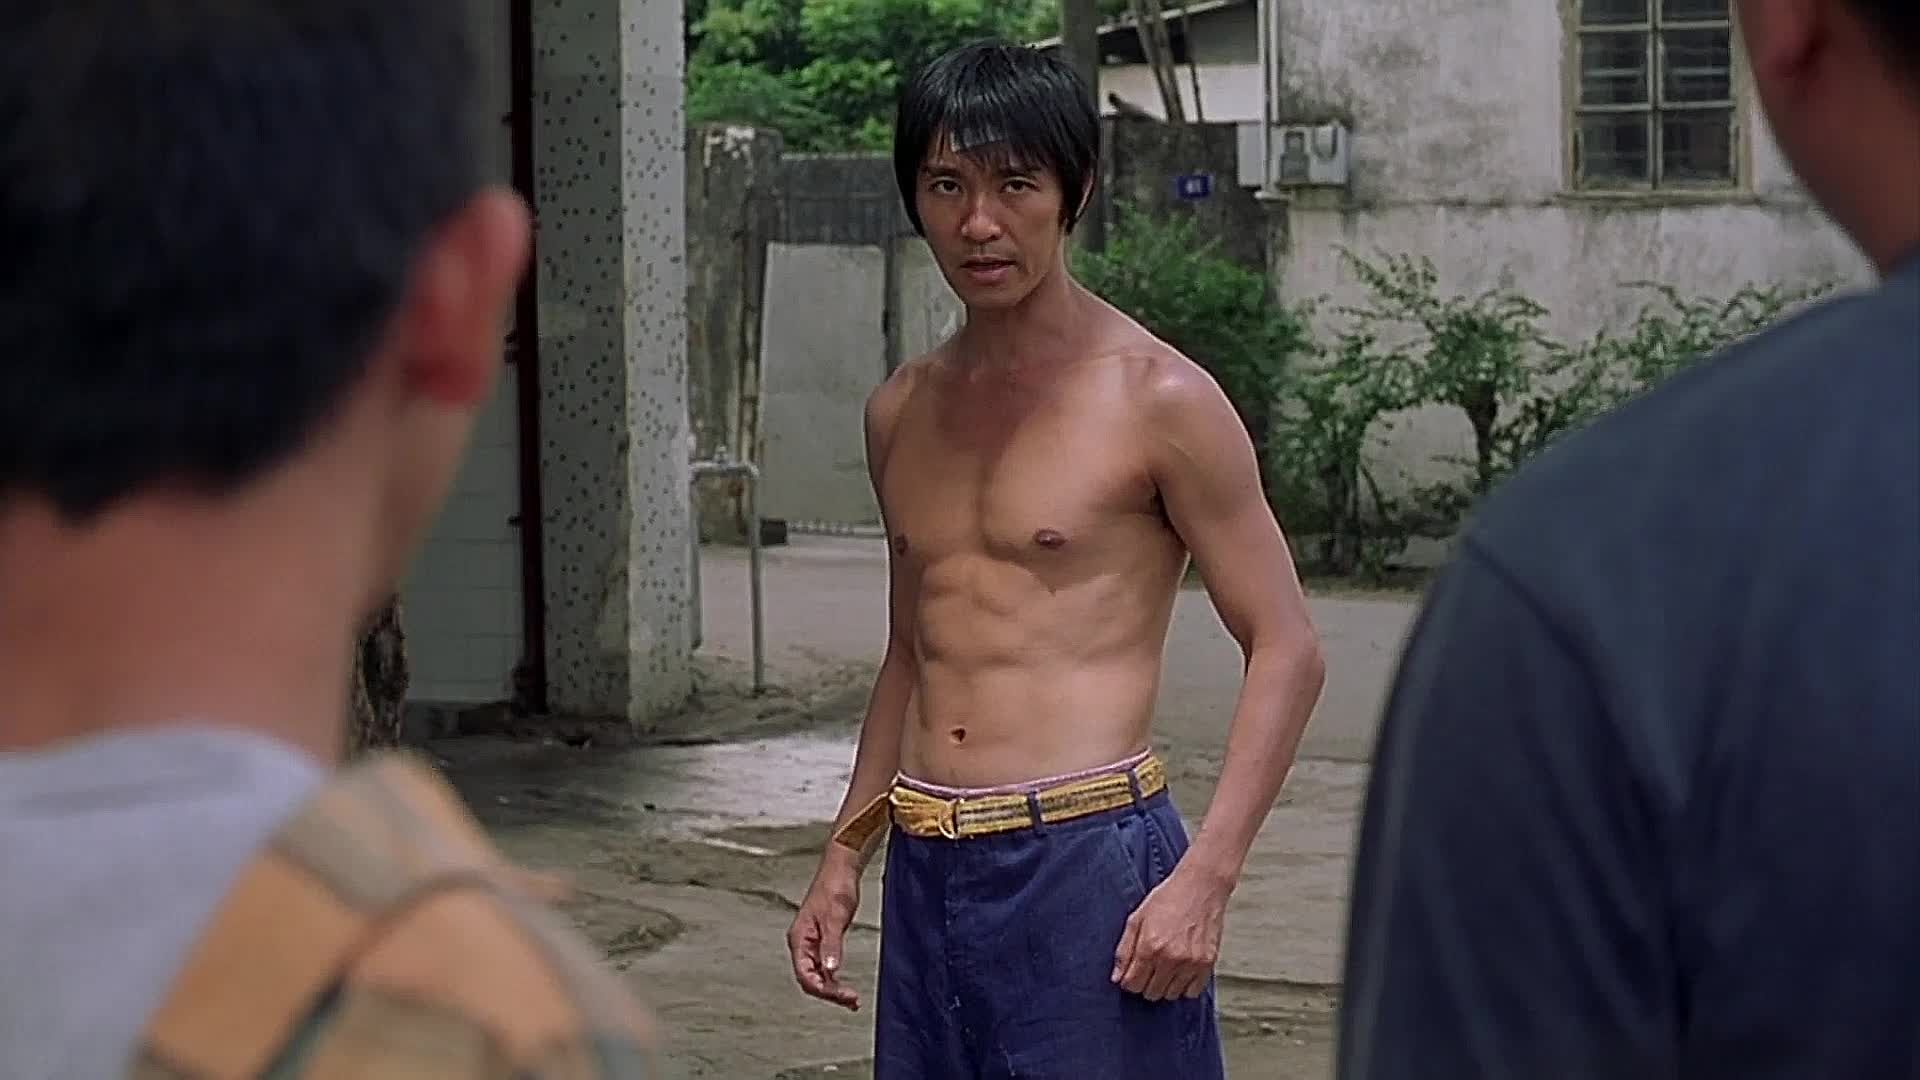 M A A C Maac Fight Of The Day Stephen Chow Vs Street Thugs